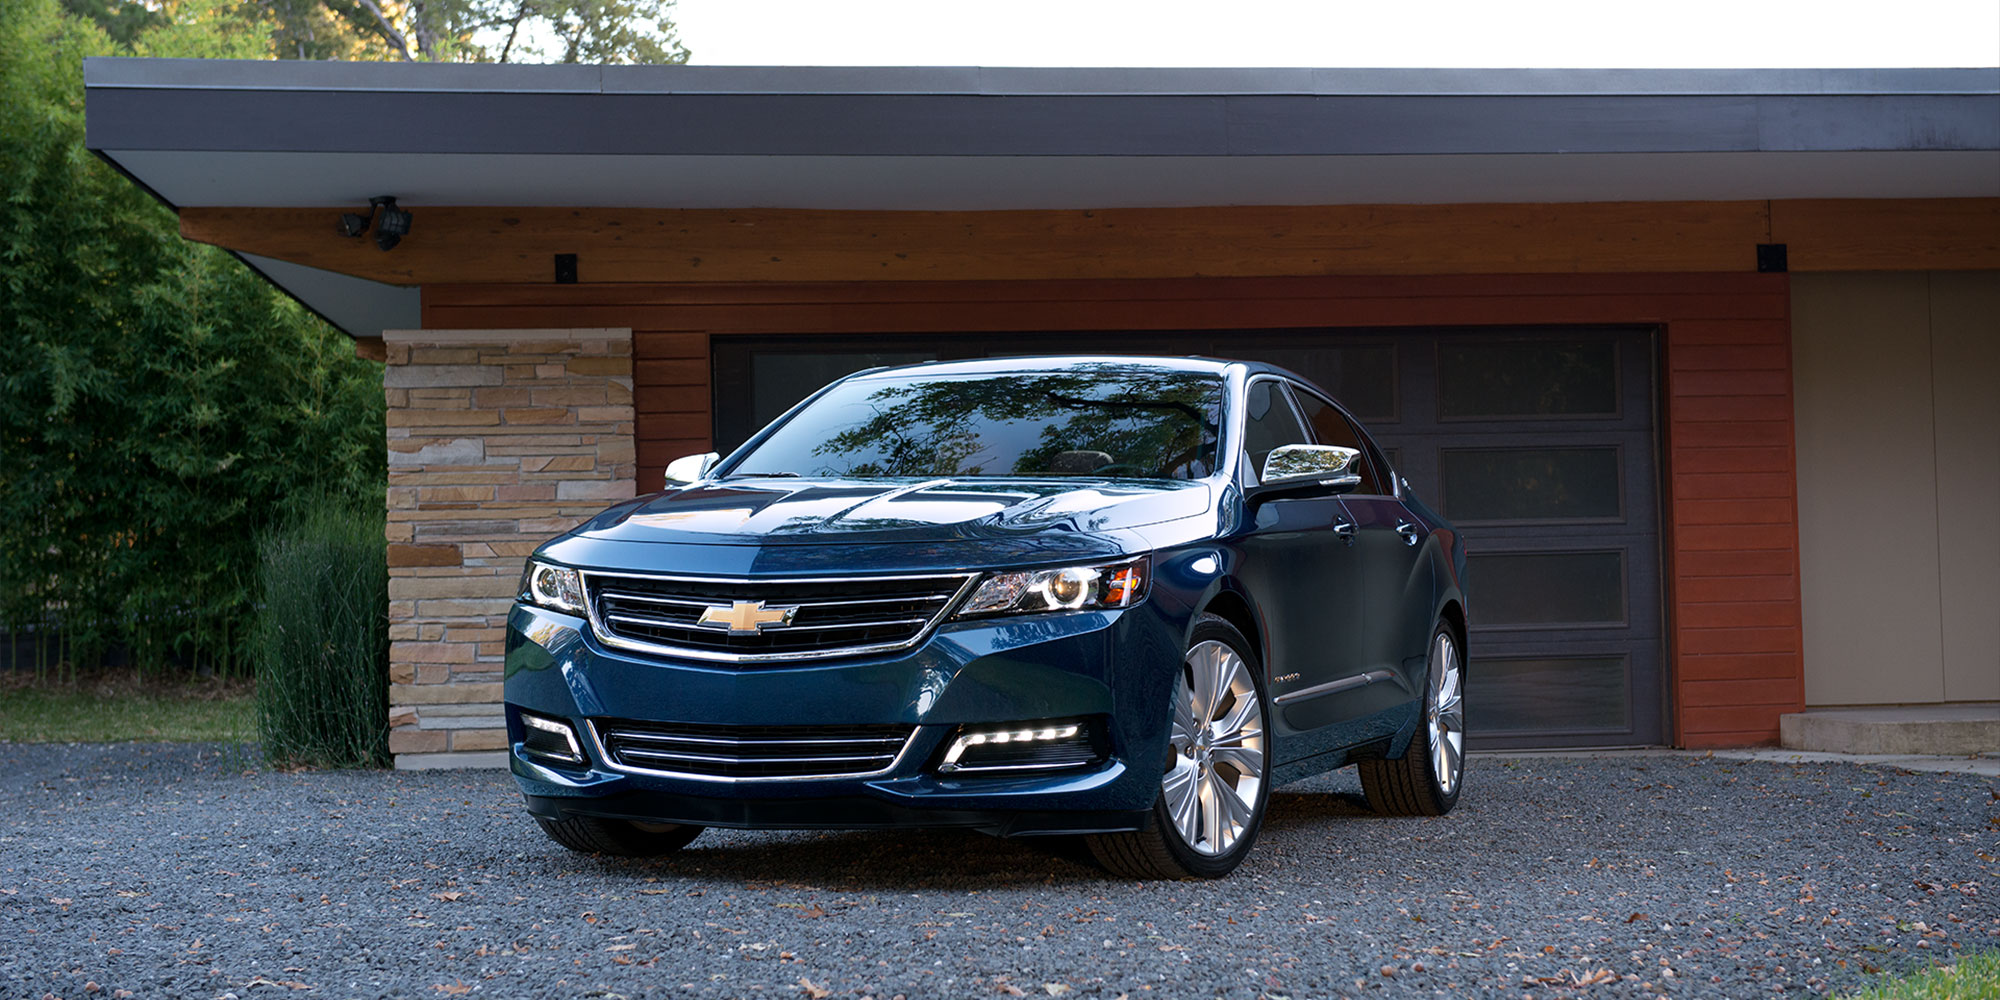 medium resolution of 2018 chevrolet impala in charlottesville va